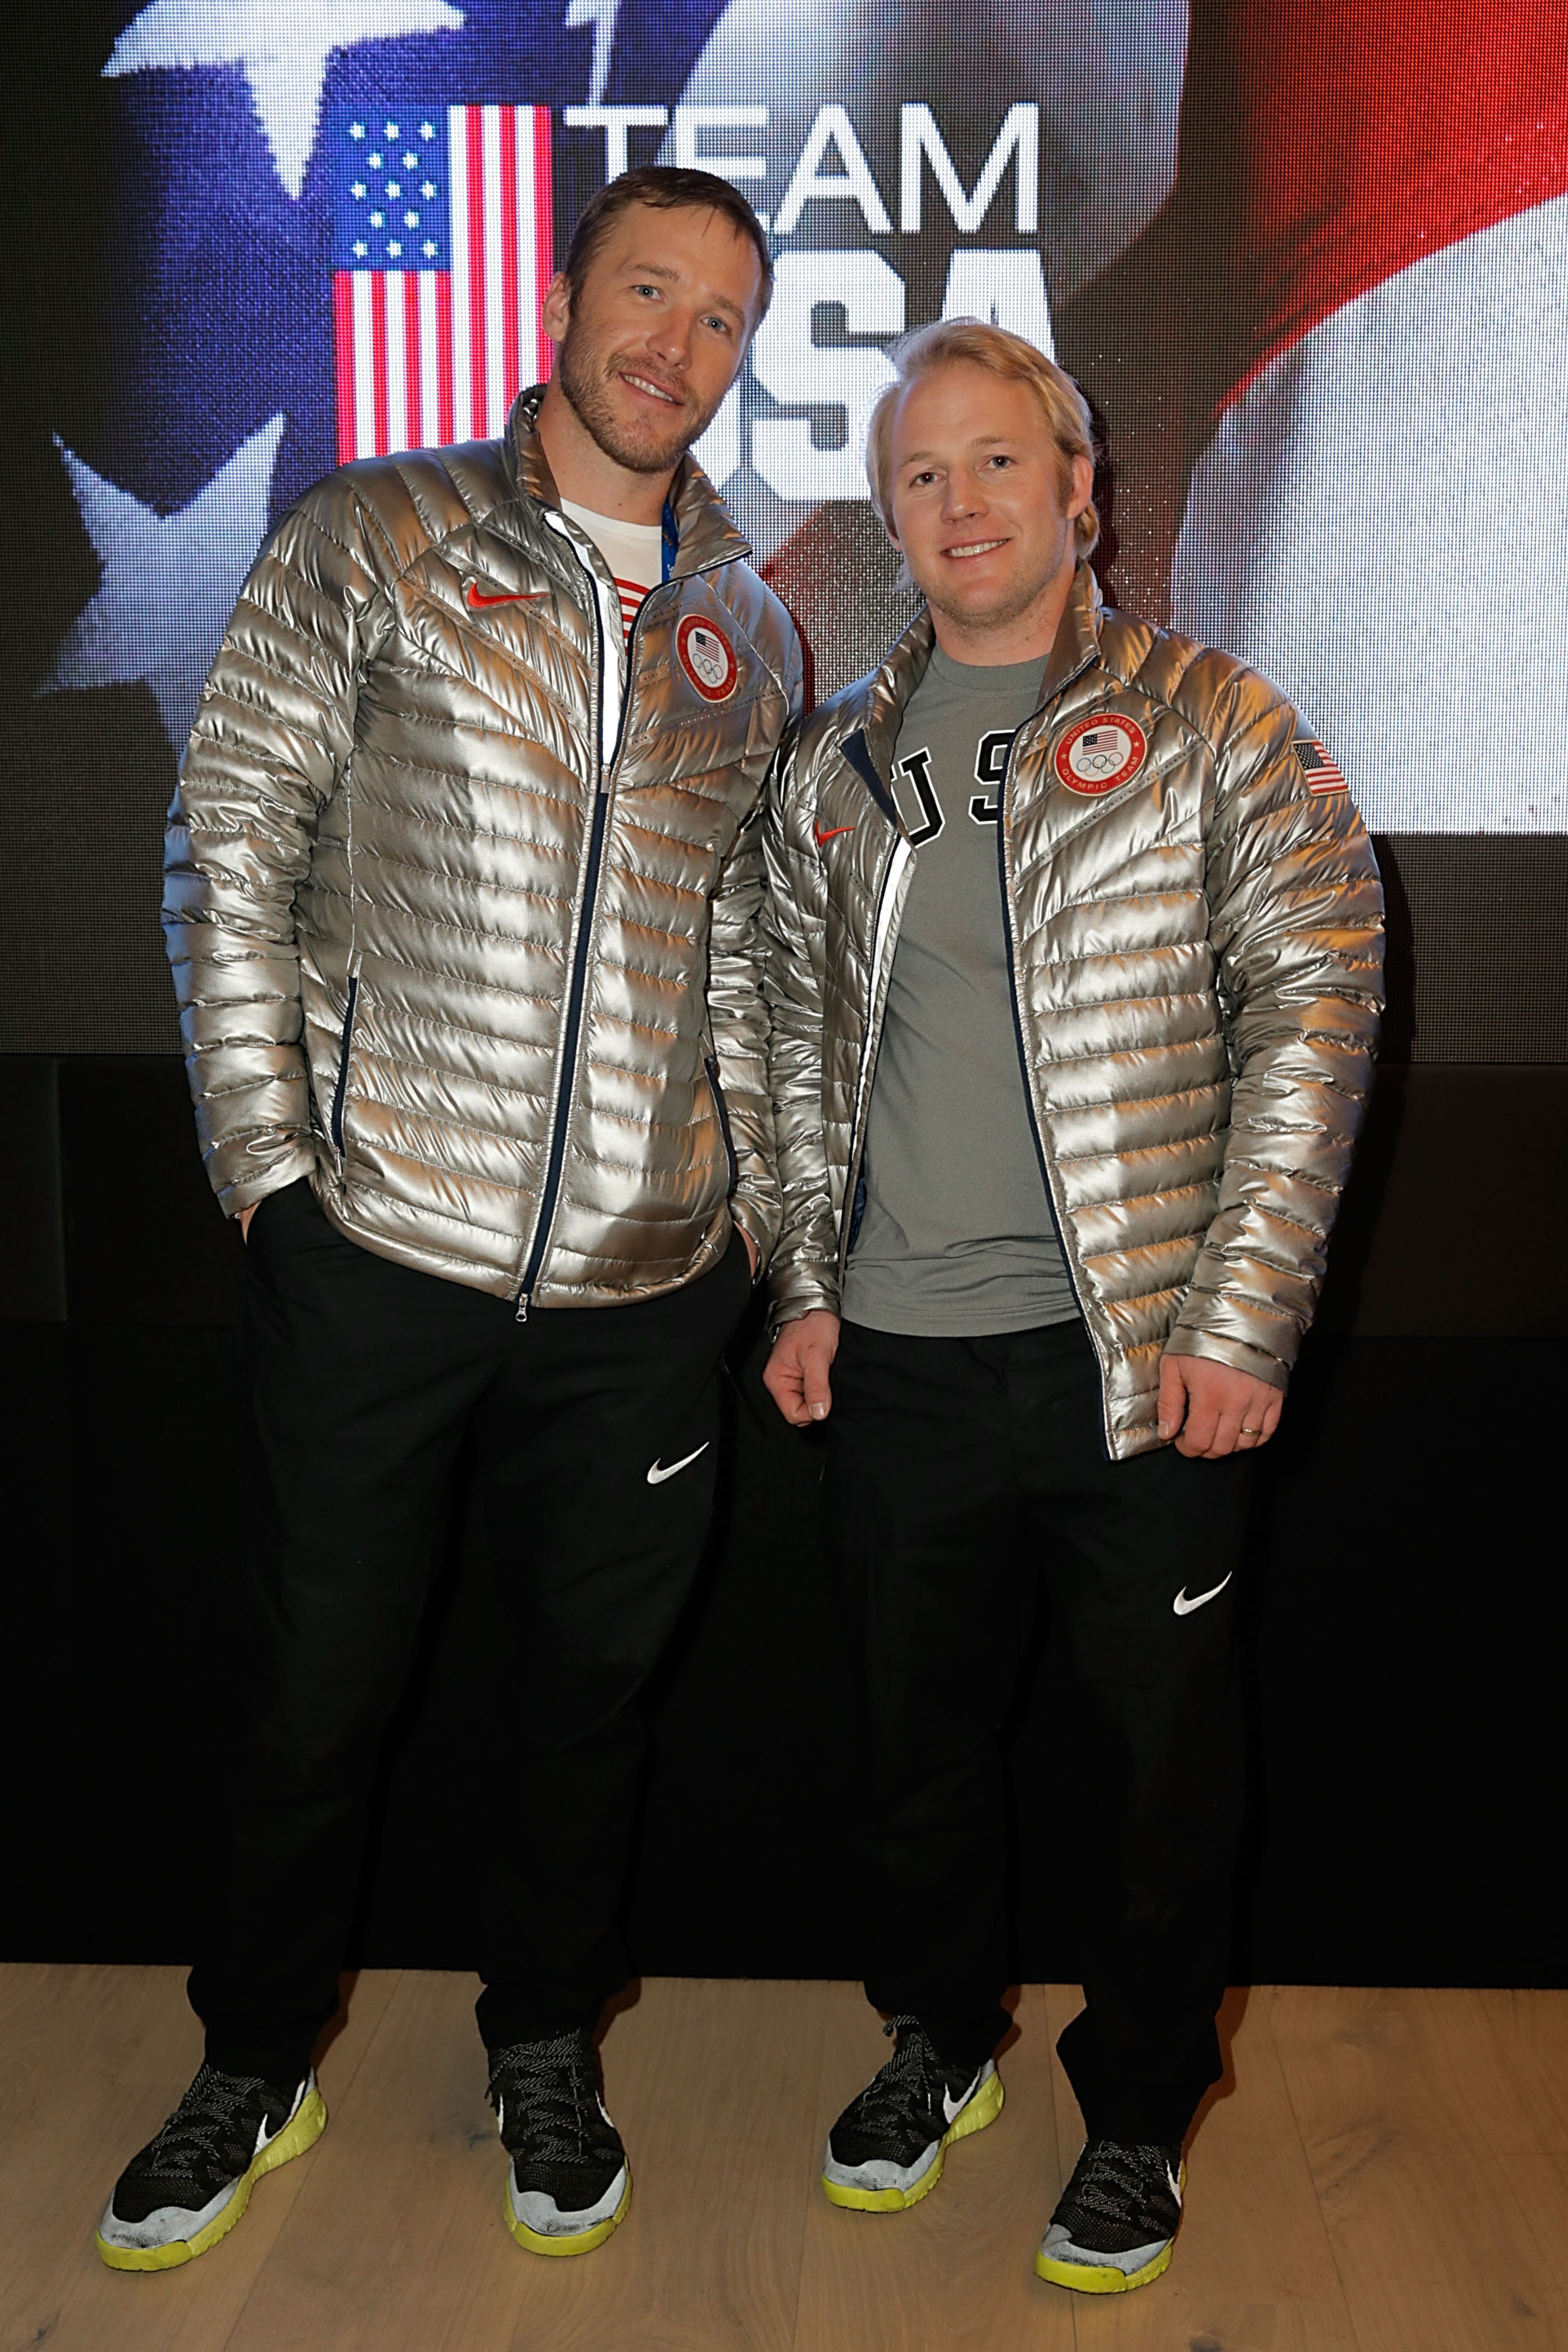 Weibrecht and Miller kept Team USA in range of the top of the medal board.